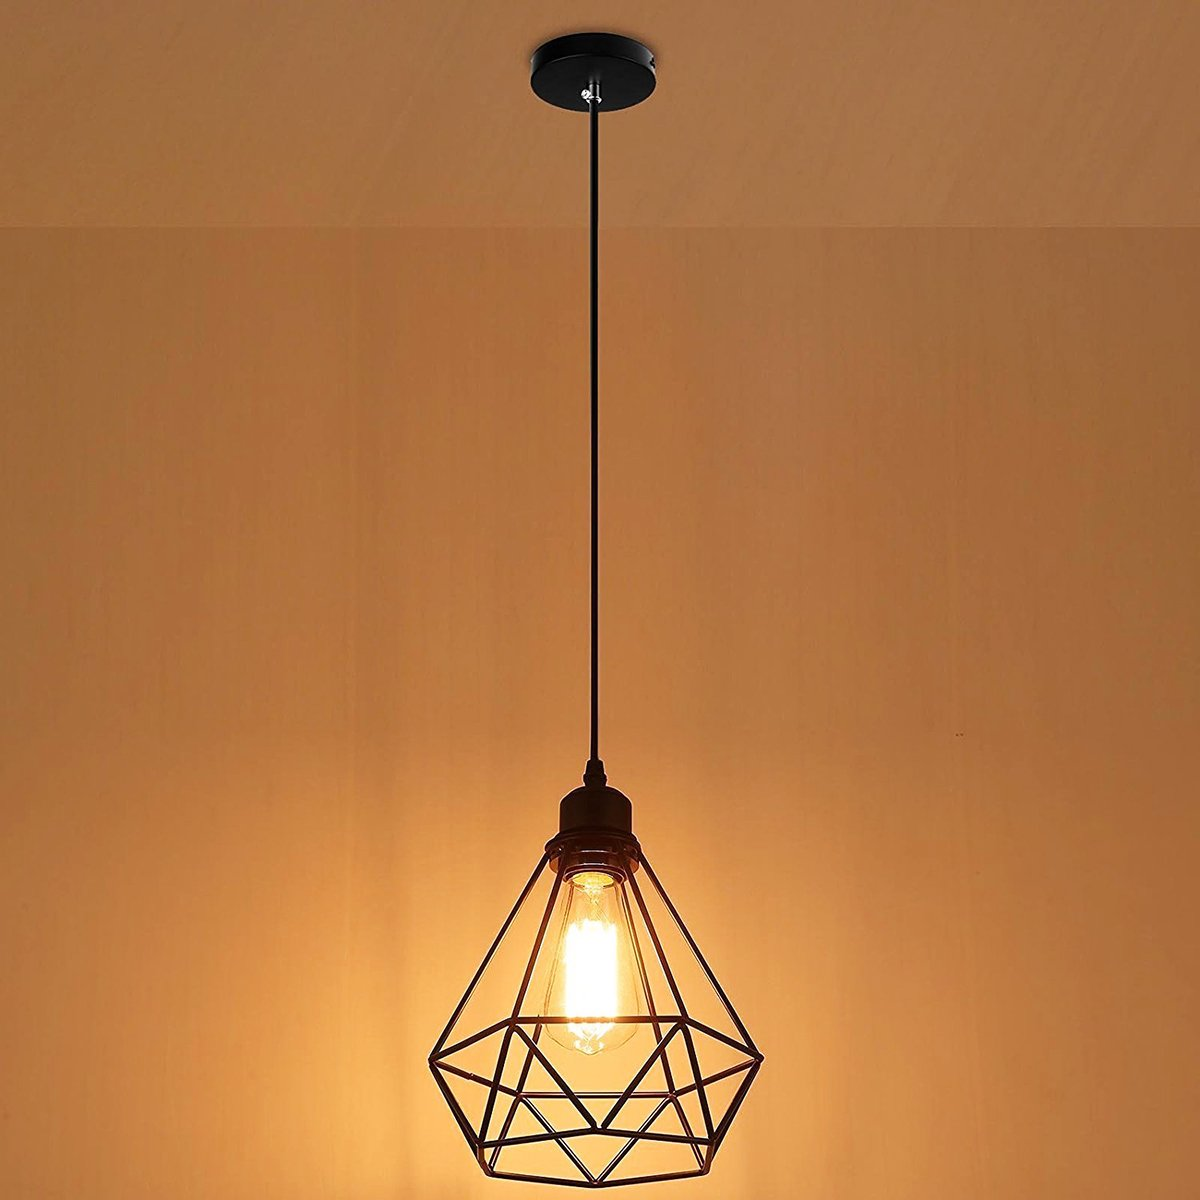 Vintage Wire Cage Pendant Light Mklot Industrial Metal Lamp Guard Wiring A Plug To Fixture In Ceiling Chandelier Lighting